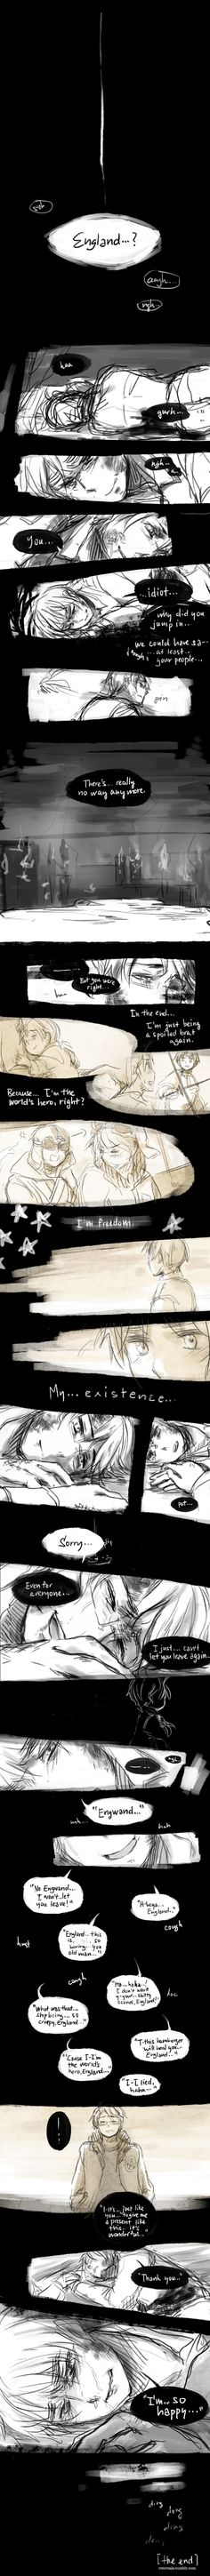 i've always hated seeing you leave, you know by ~Crystalicia on deviantART <<< really really like this, but I don't know what it showing. Could anyone explain?